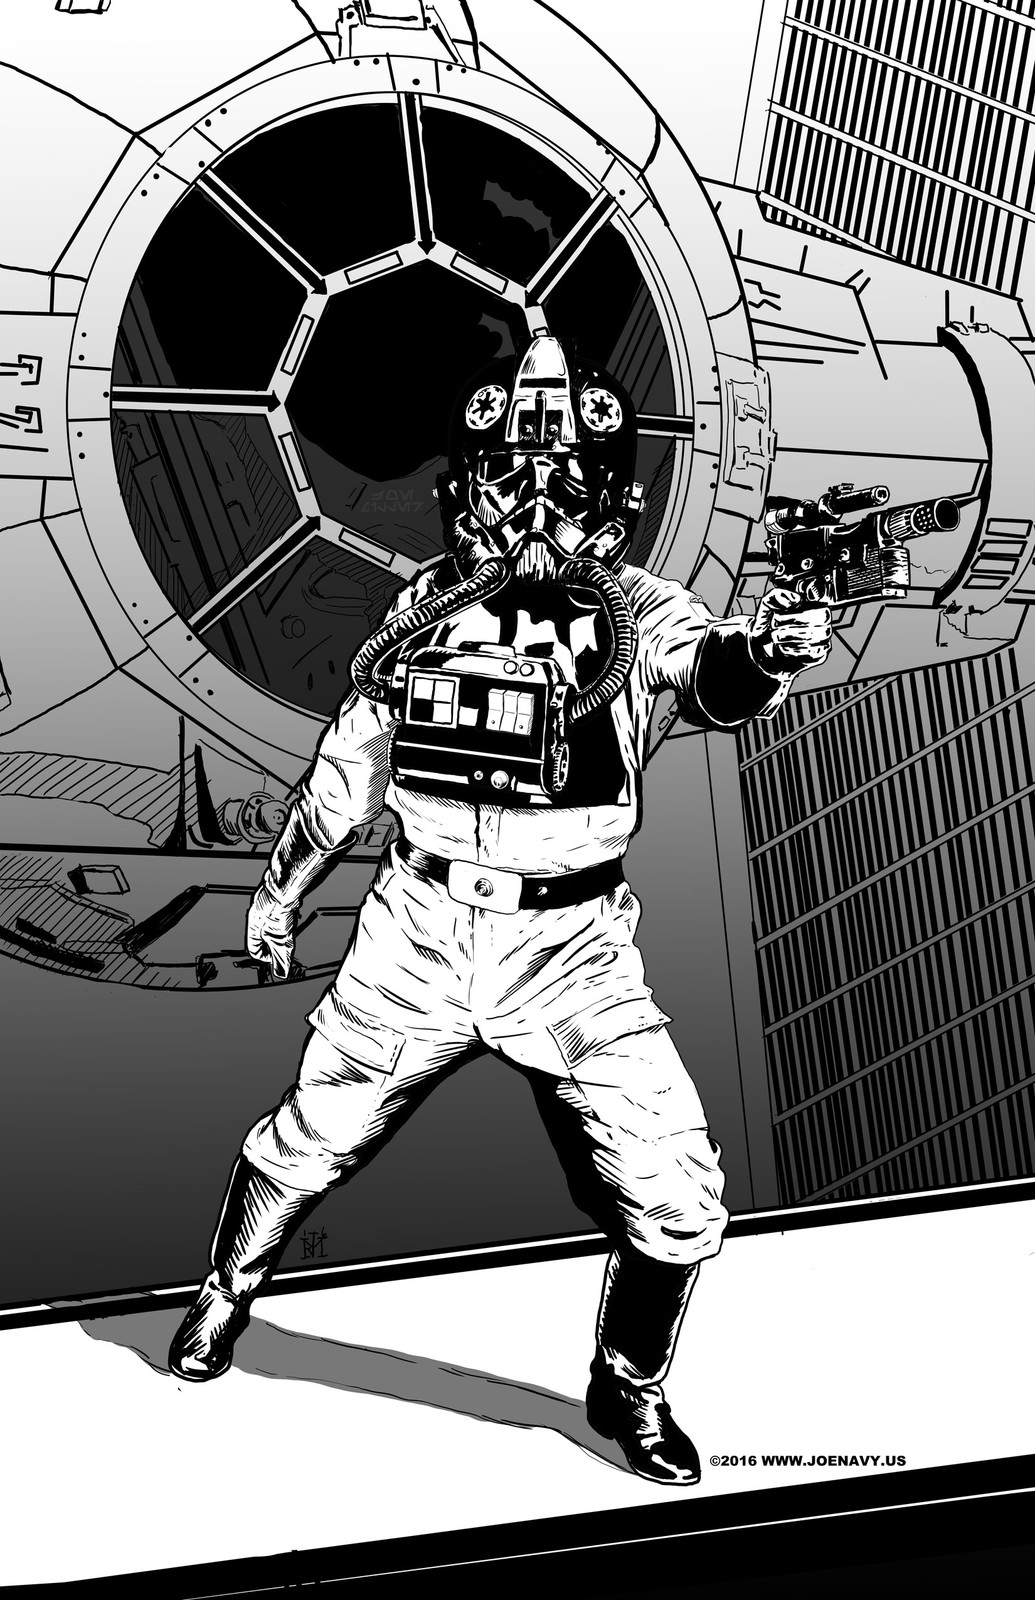 Tie Fighter Pilot Illustration